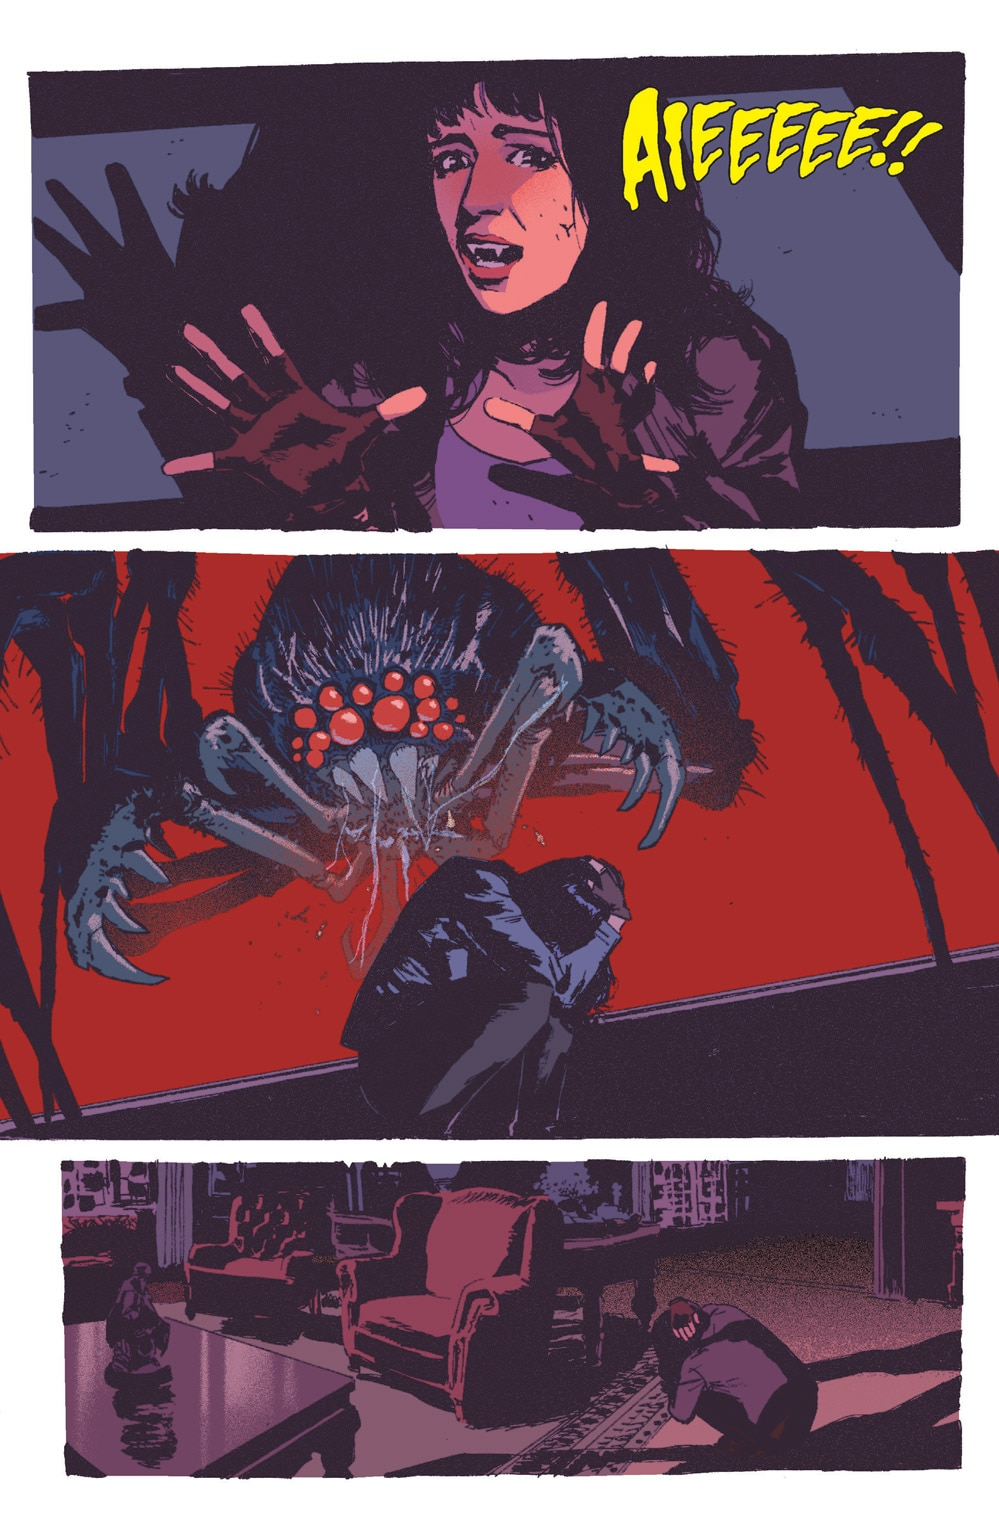 Vampironica 05 3 - Exclusive VAMPIRONICA #5 Preview is a Descent Into a Pure Nightmare